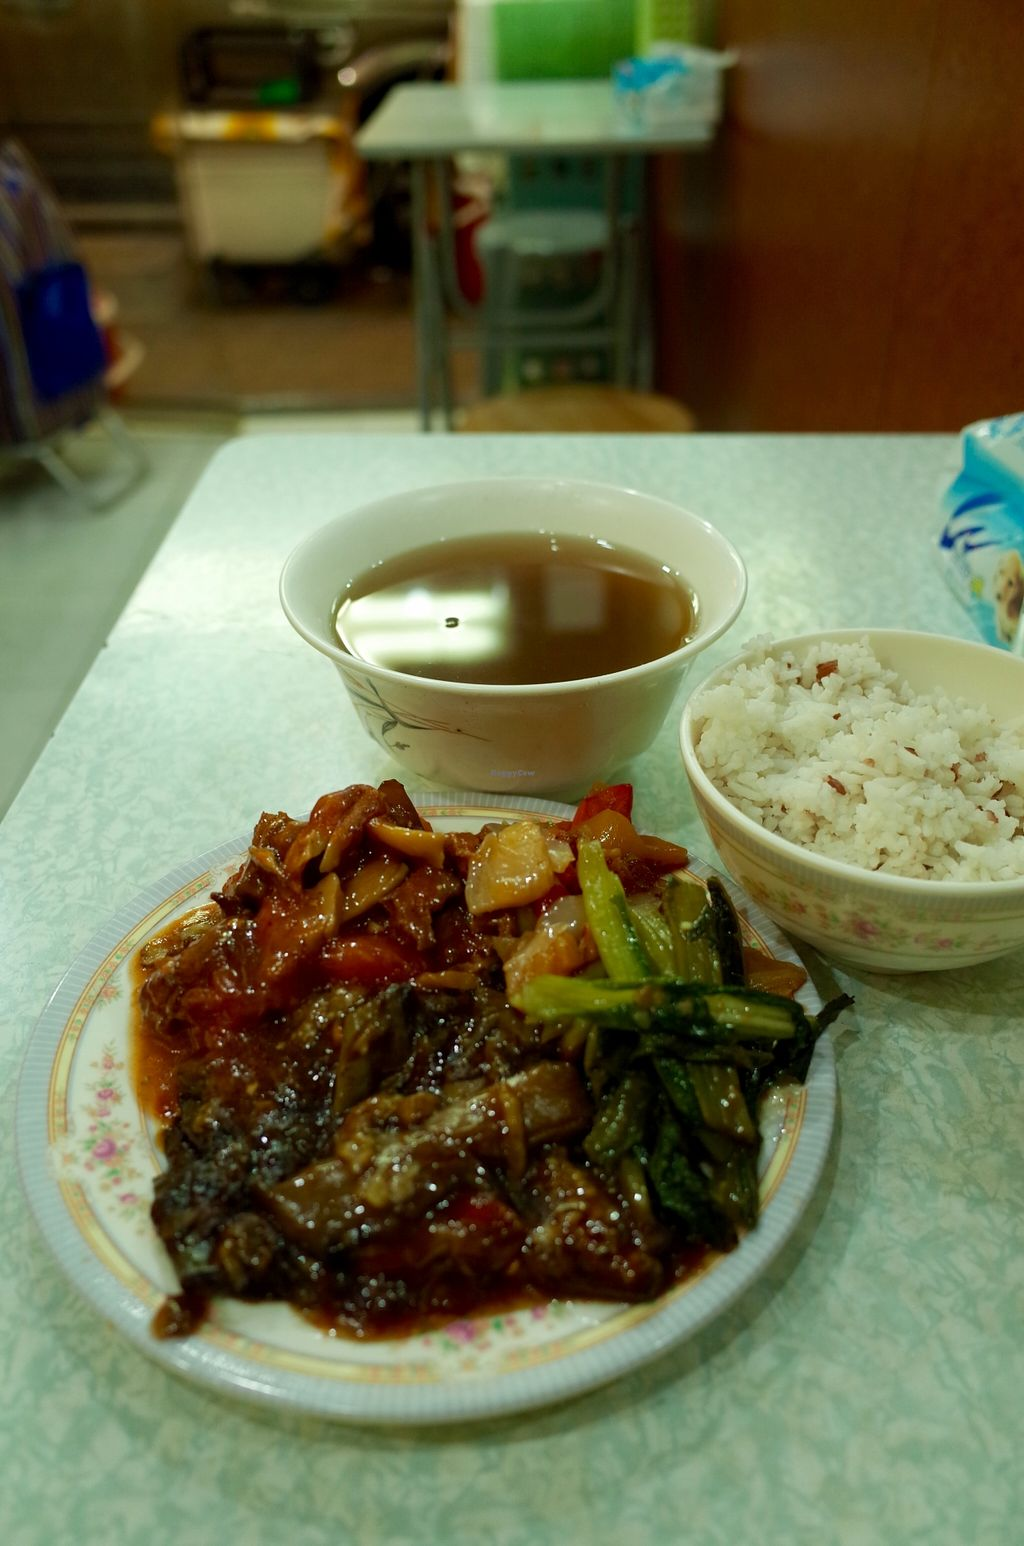 """Photo of Kam Heung Vegetarian - Fortress Hill  by <a href=""""/members/profile/ouikouik"""">ouikouik</a> <br/>dinner at kam heung <br/> October 15, 2015  - <a href='/contact/abuse/image/48002/121391'>Report</a>"""